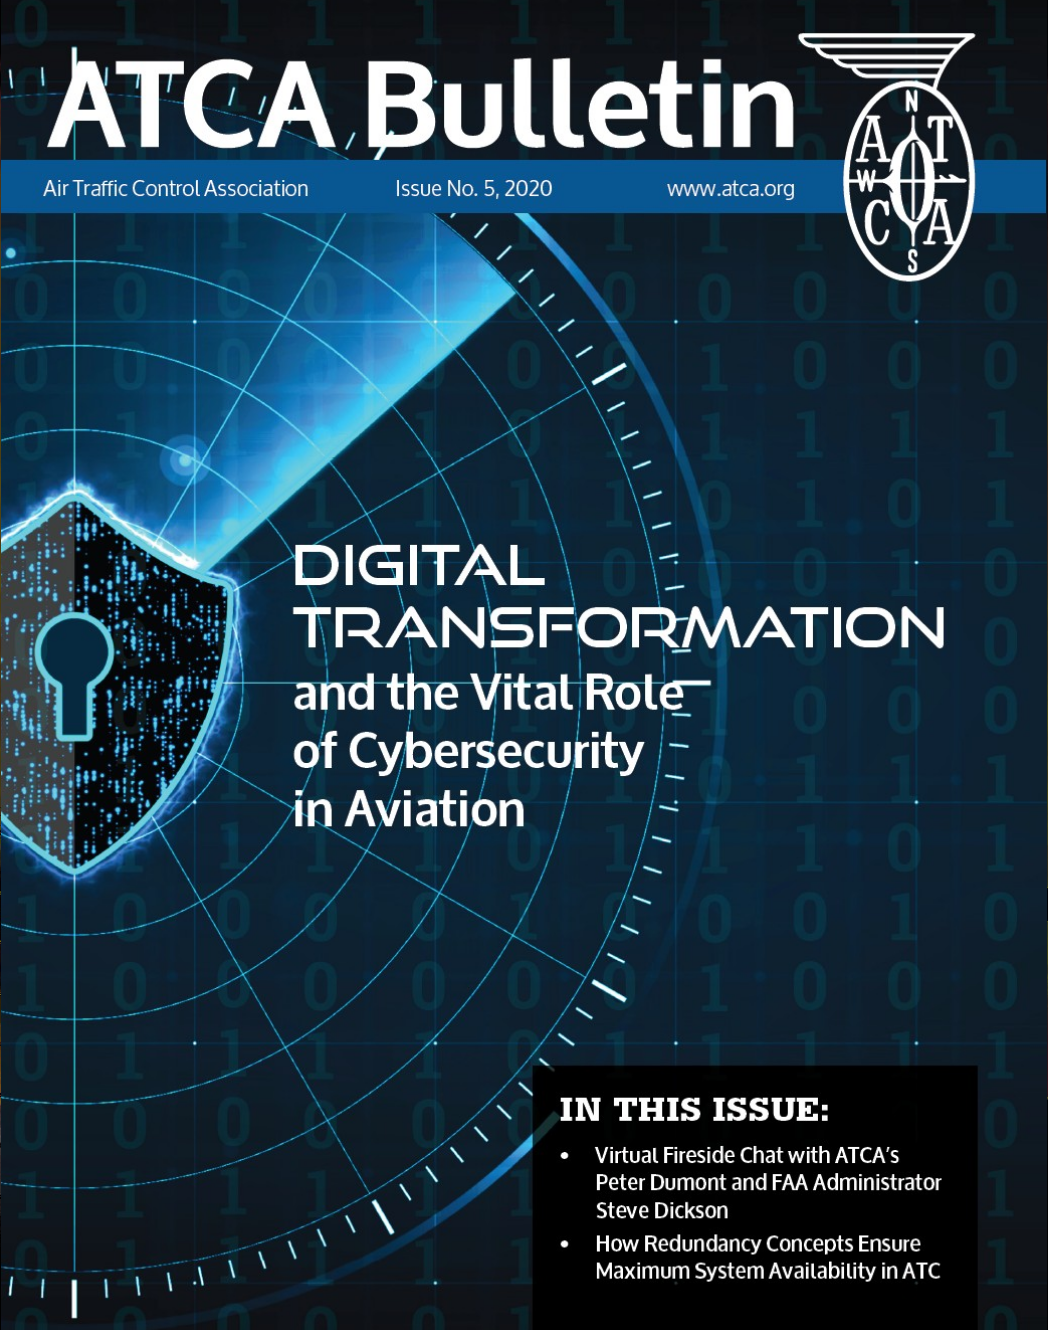 Digital Transformation and the Vital Role of Cybersecurity in Aviation by Robert V. Jones, CISSP, President & CEO, PReSafe Technologies here